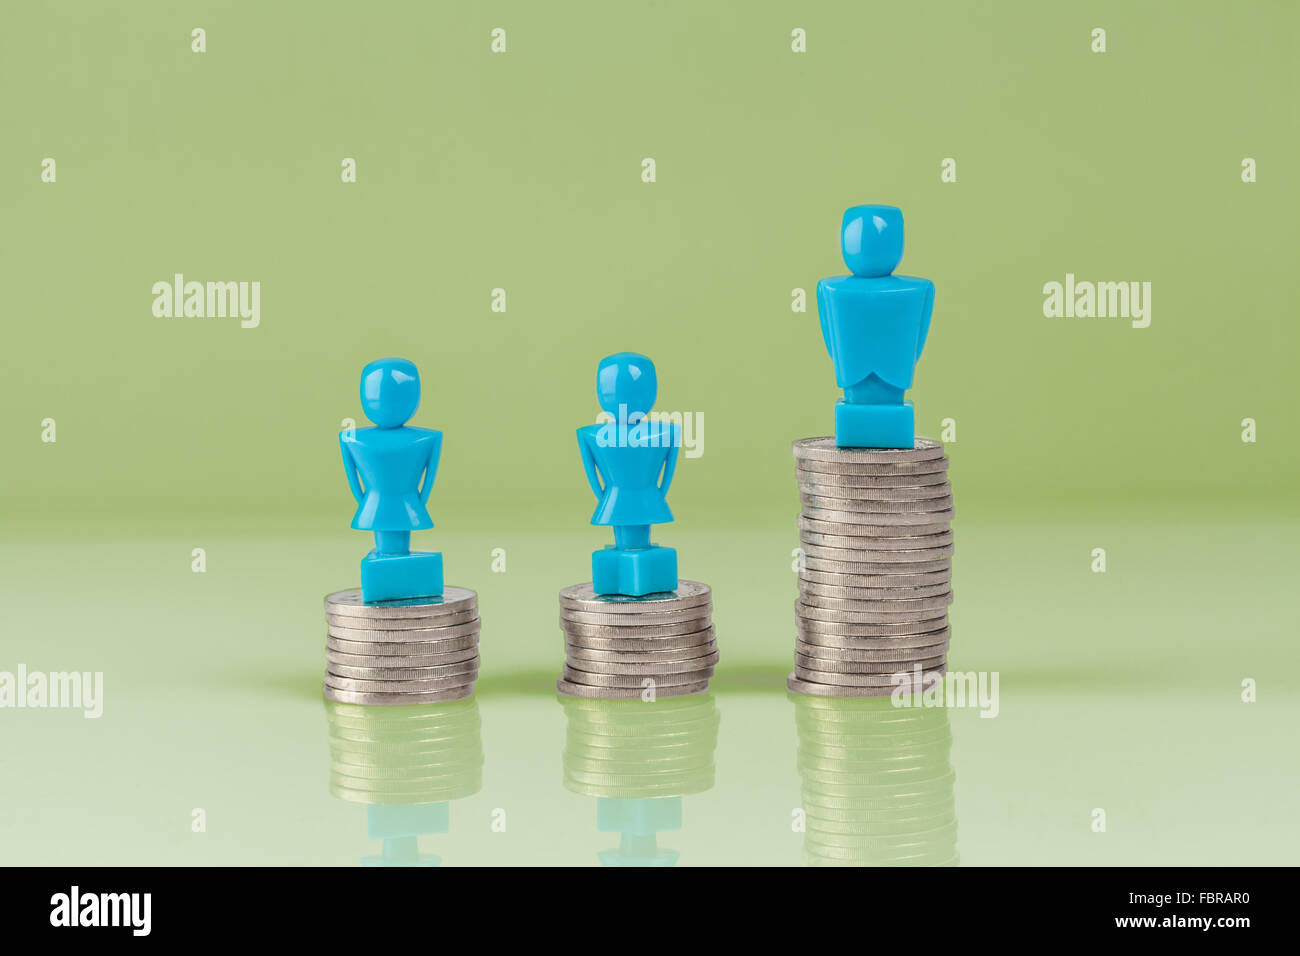 Male and female figurines standing on top of columns of coins. Wage gap concept illustration. - Stock Image